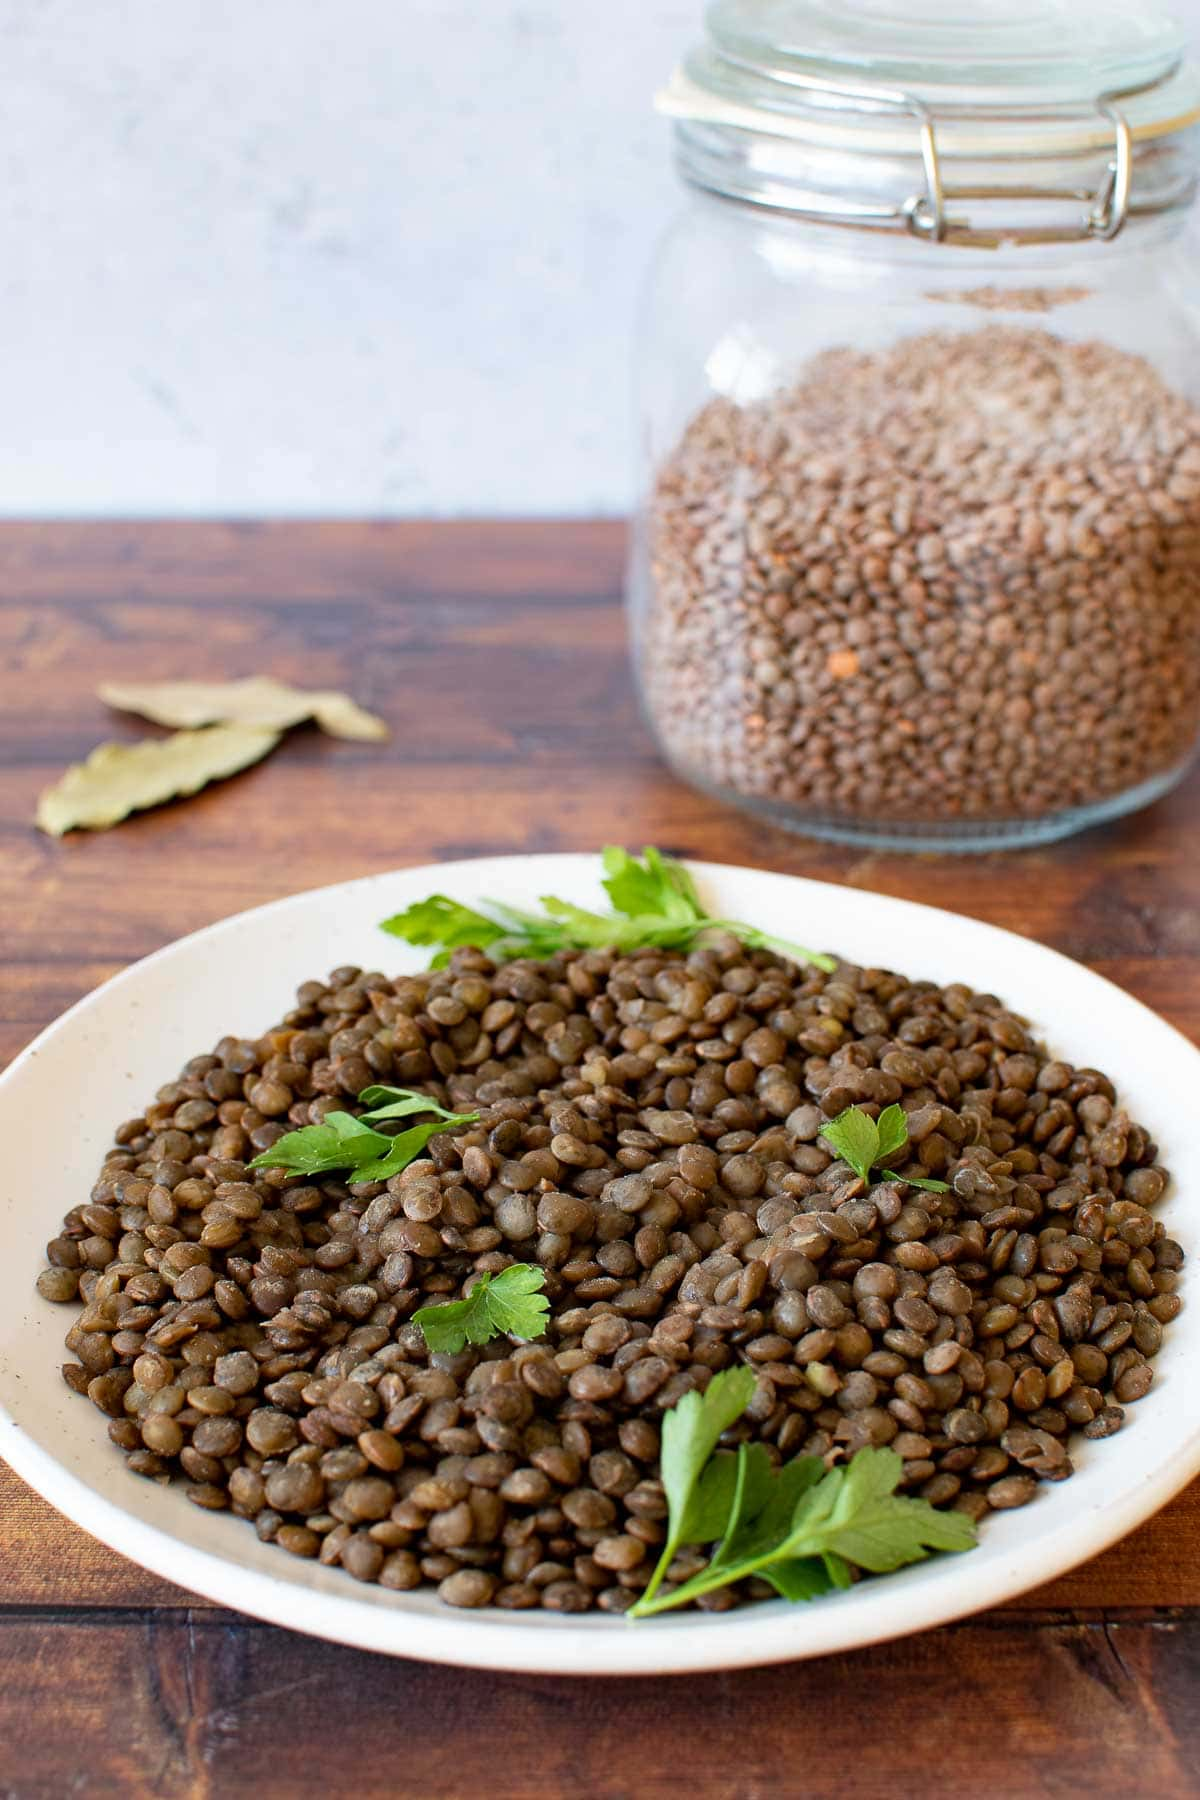 A plate with lentils, with a mason jar with dry lentils in the background.